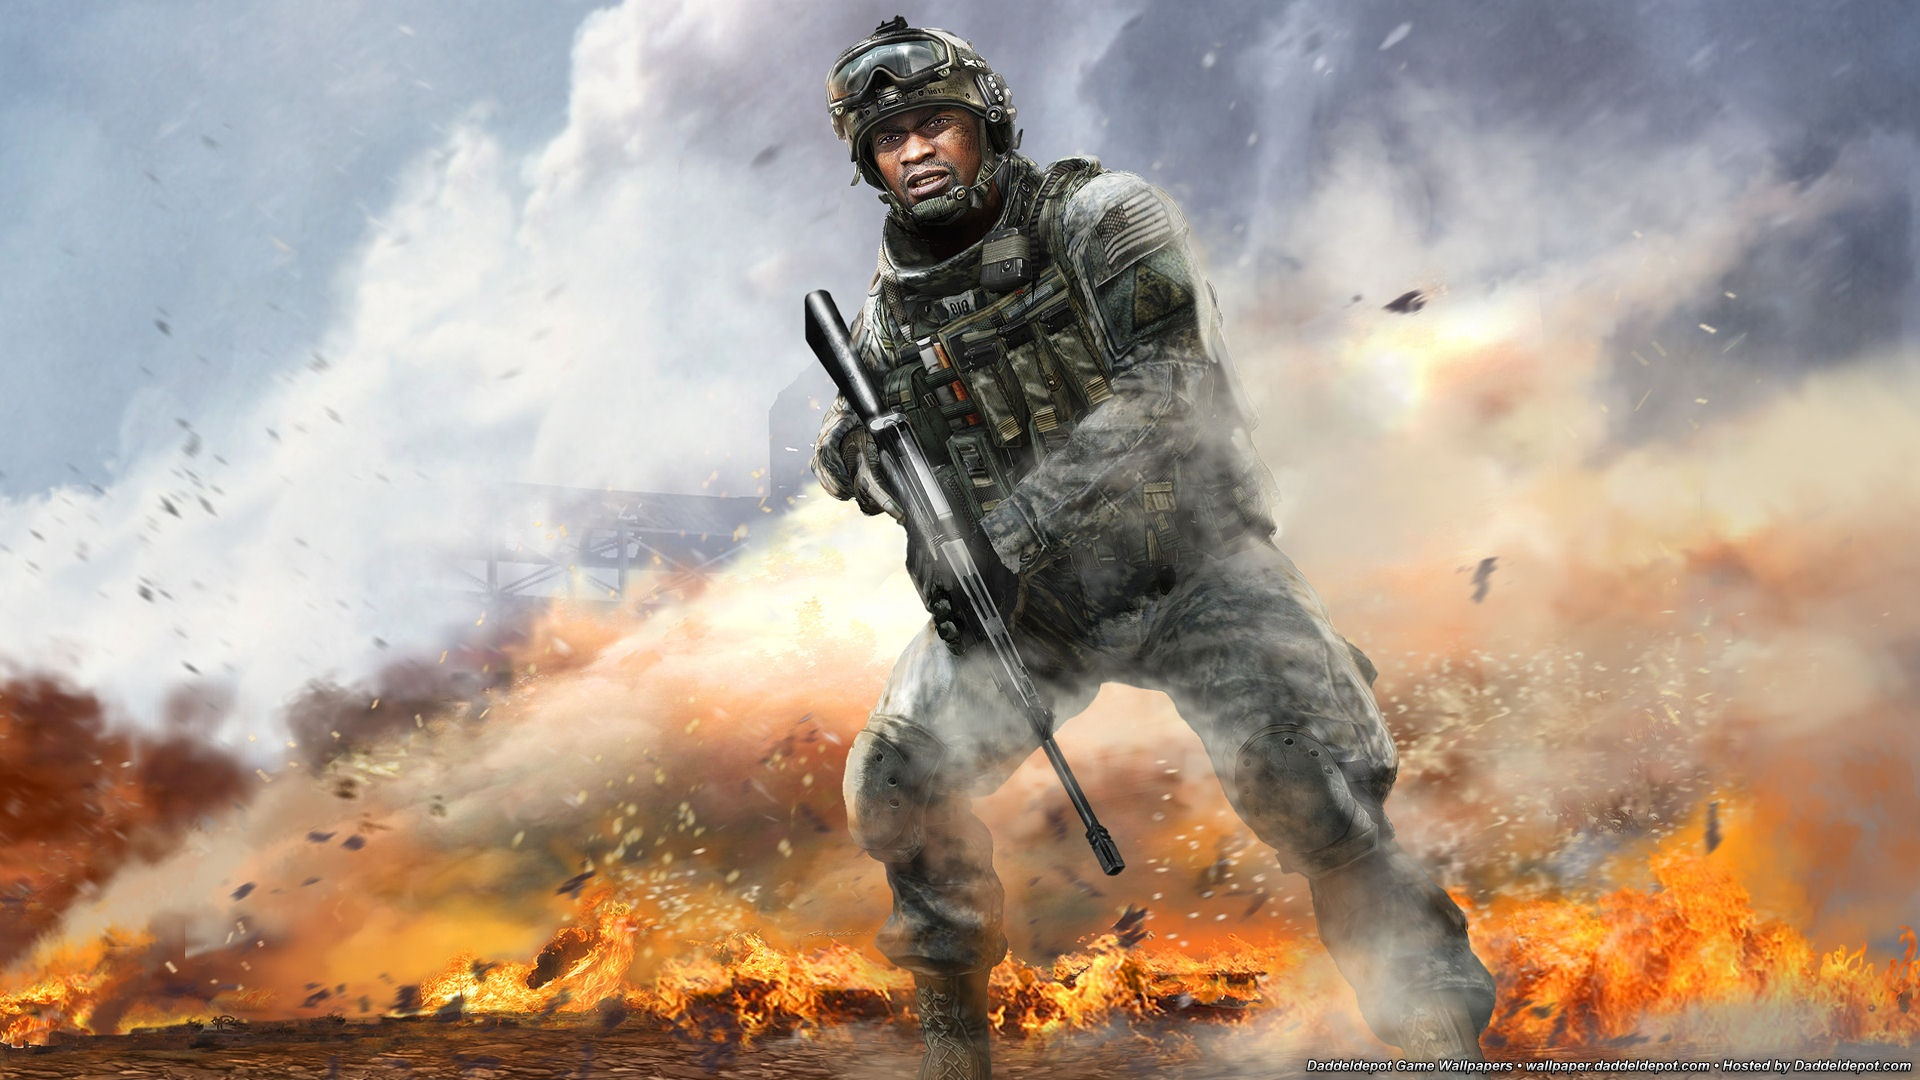 Call of duty modern warfare 2 wallpapers pictures images - Call of duty world war 2 background ...